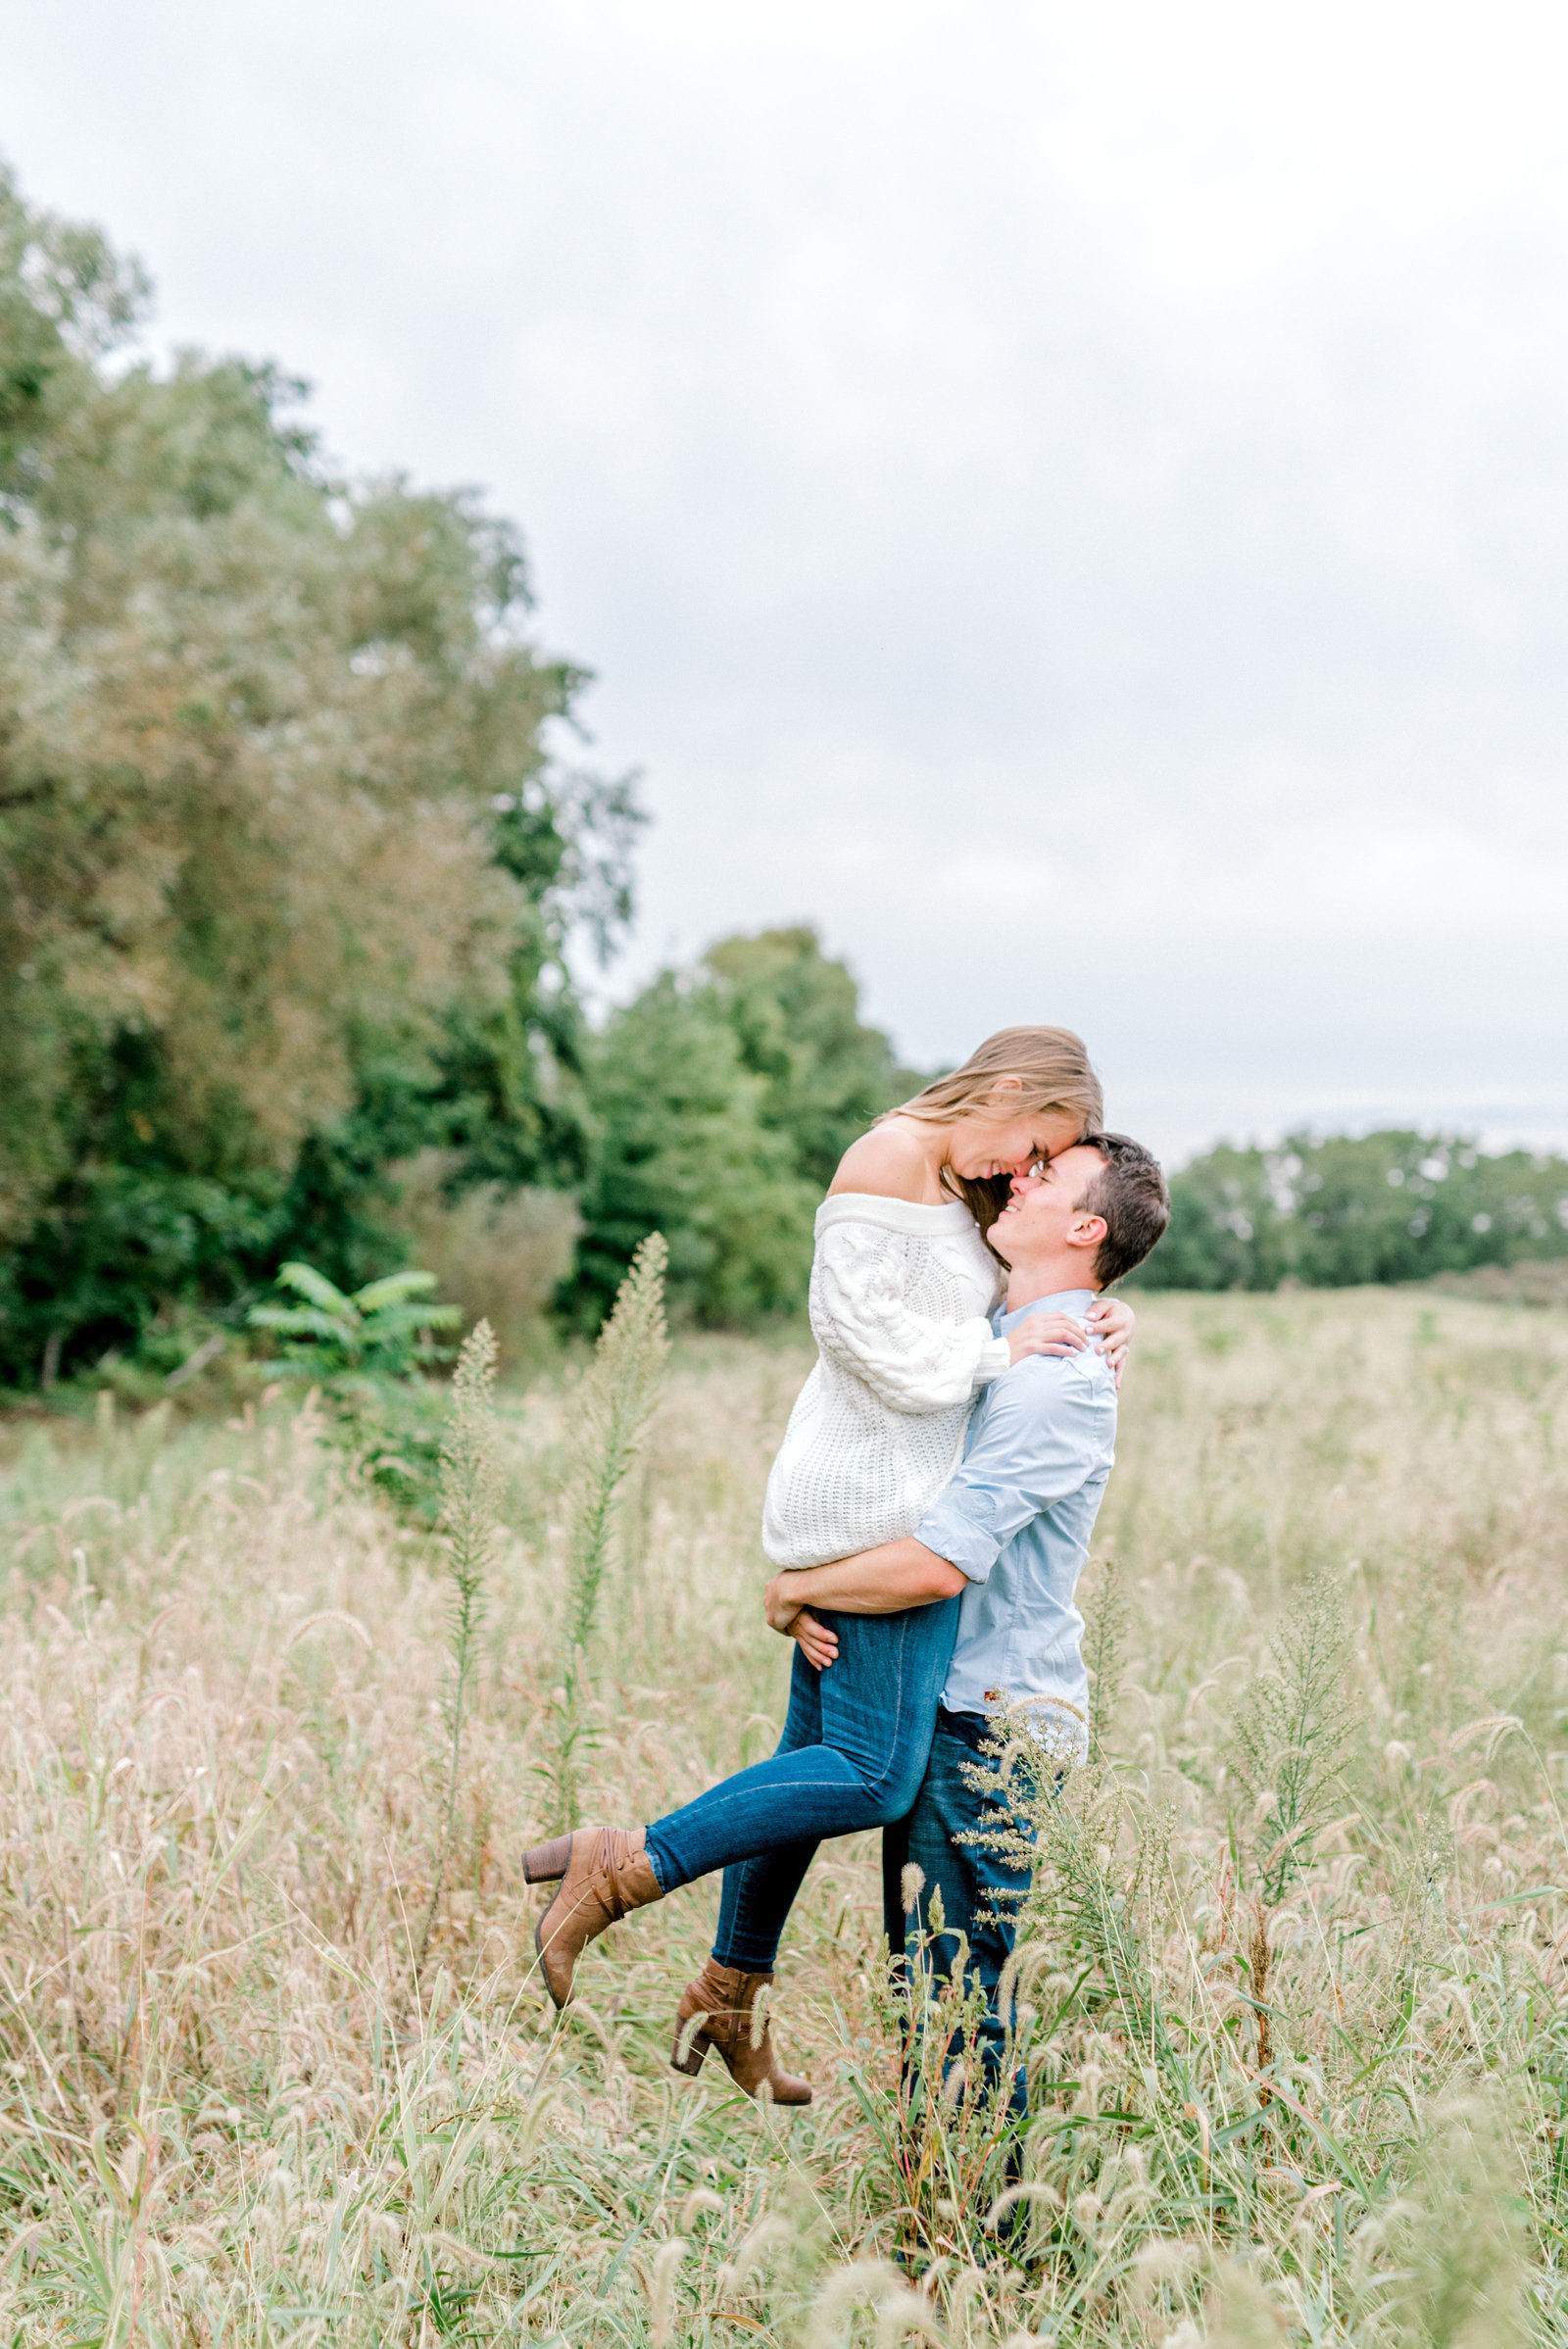 Quincy Cellars Engagement Session on Lake Erie